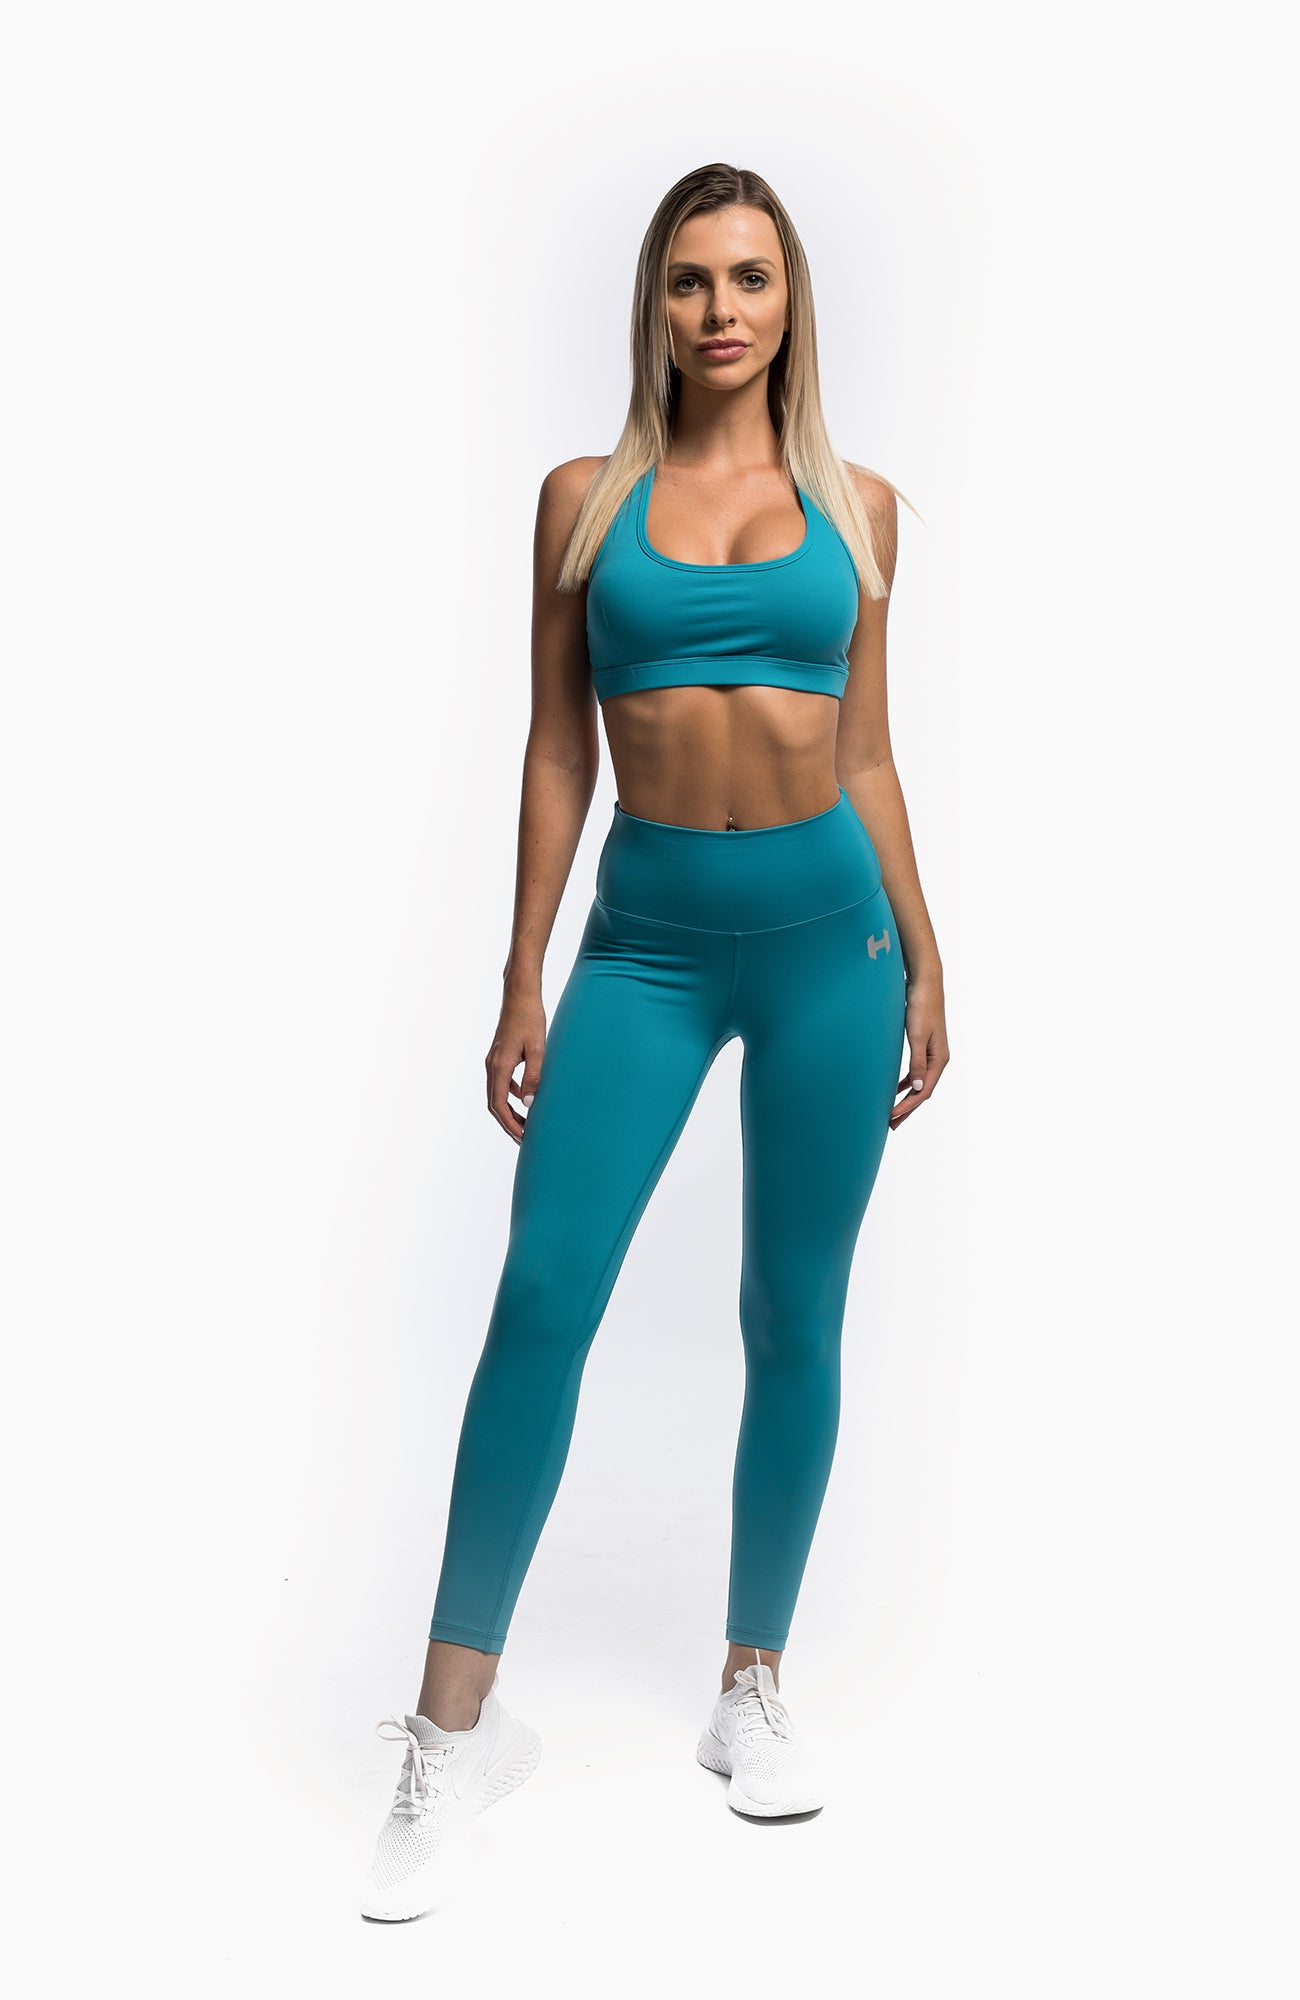 FLOW LEGGINGS - TIFFANY - hustletics.com